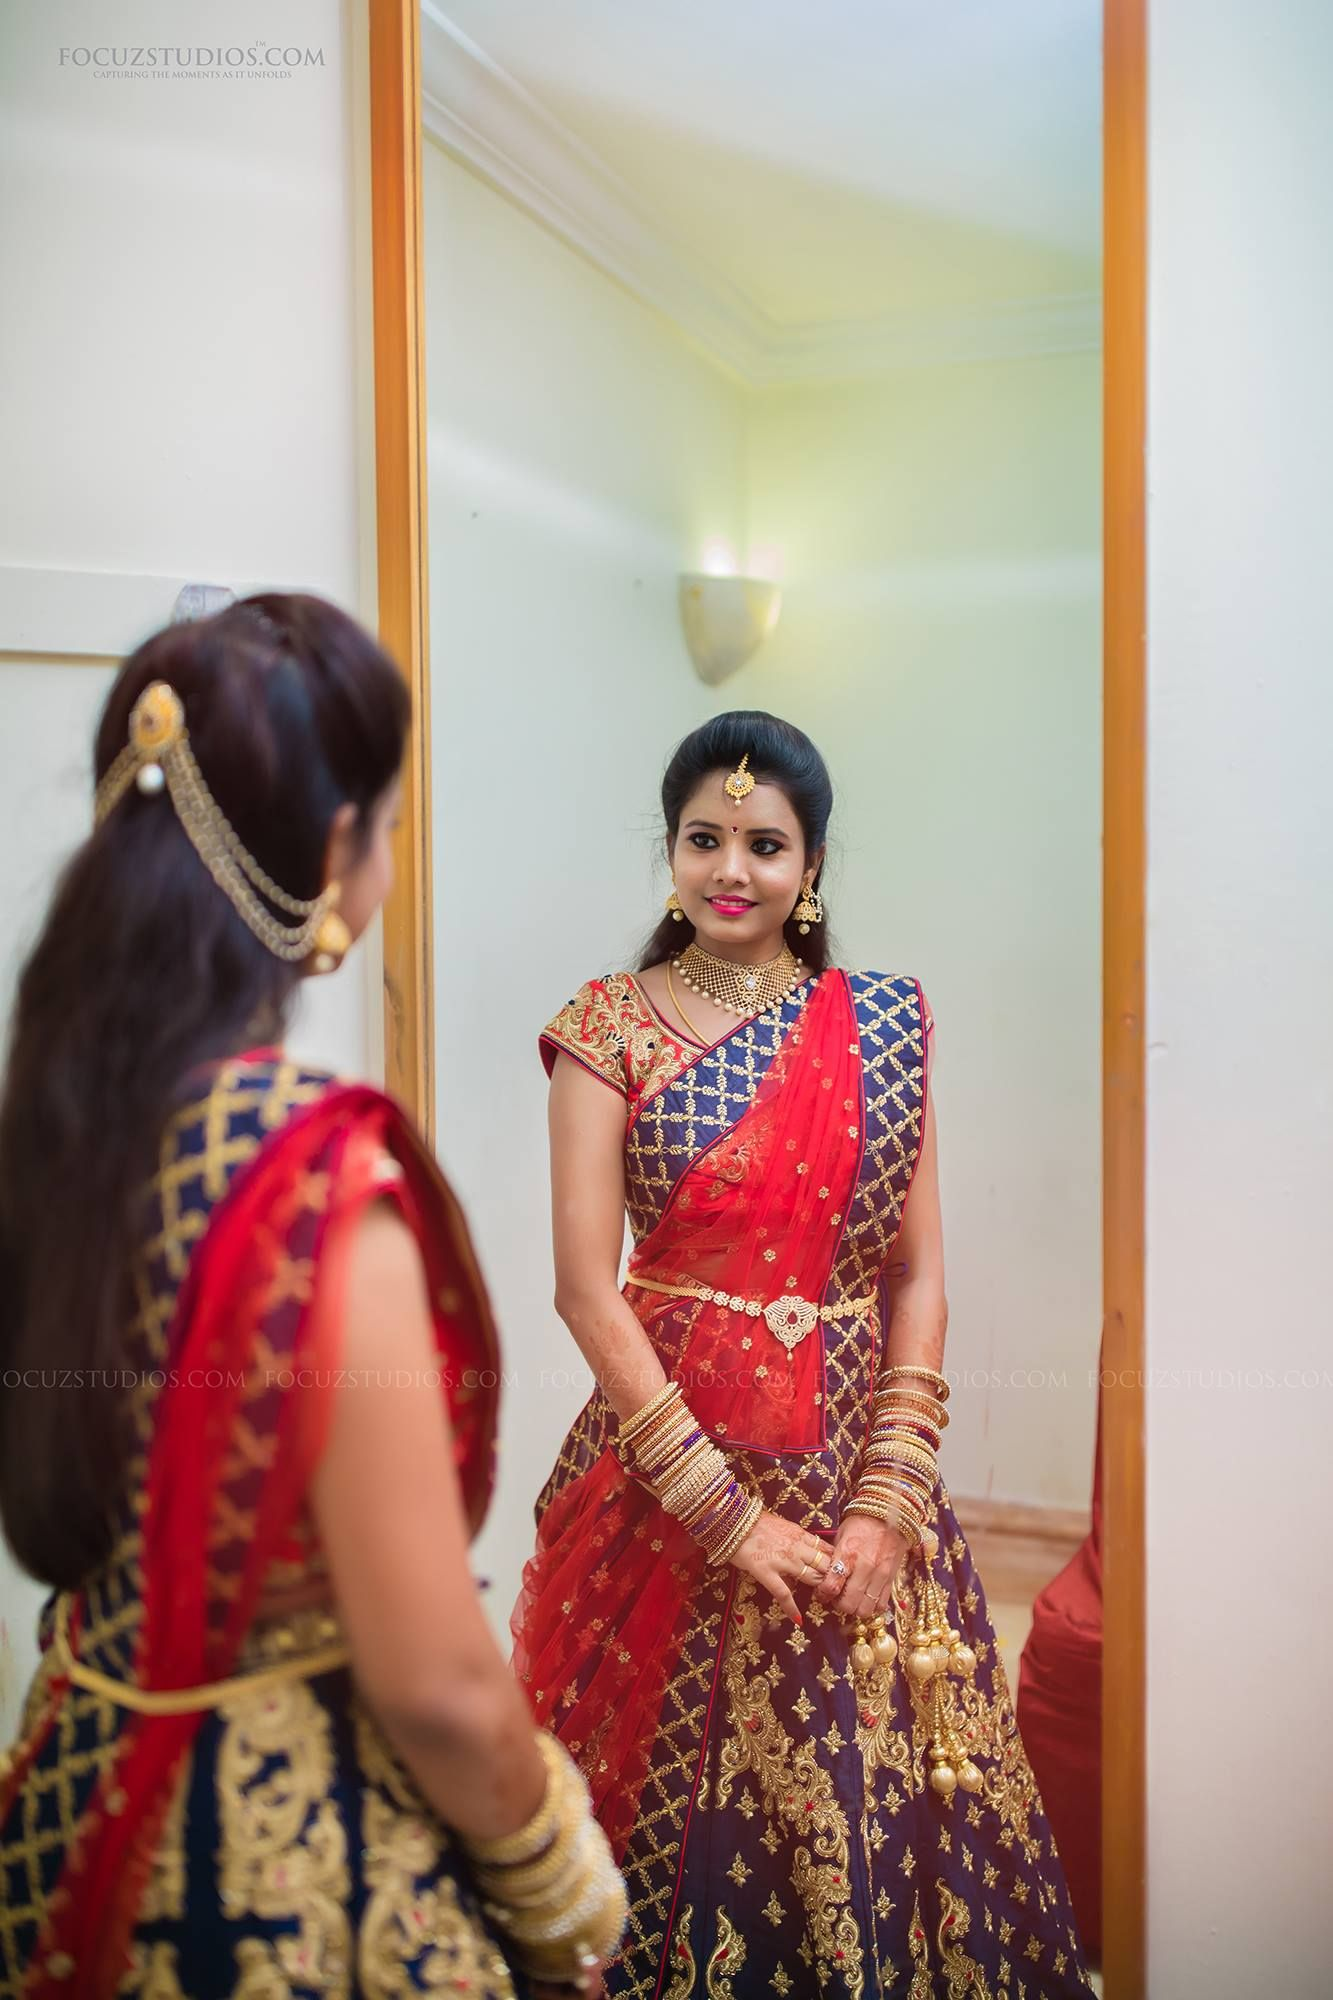 Ezwed Has Everything A South Indian Bride Needs To Plan Her Dream Weddin South Indian Wedding Hairstyles Wedding Blouse Designs Bridal Hairstyle Indian Wedding